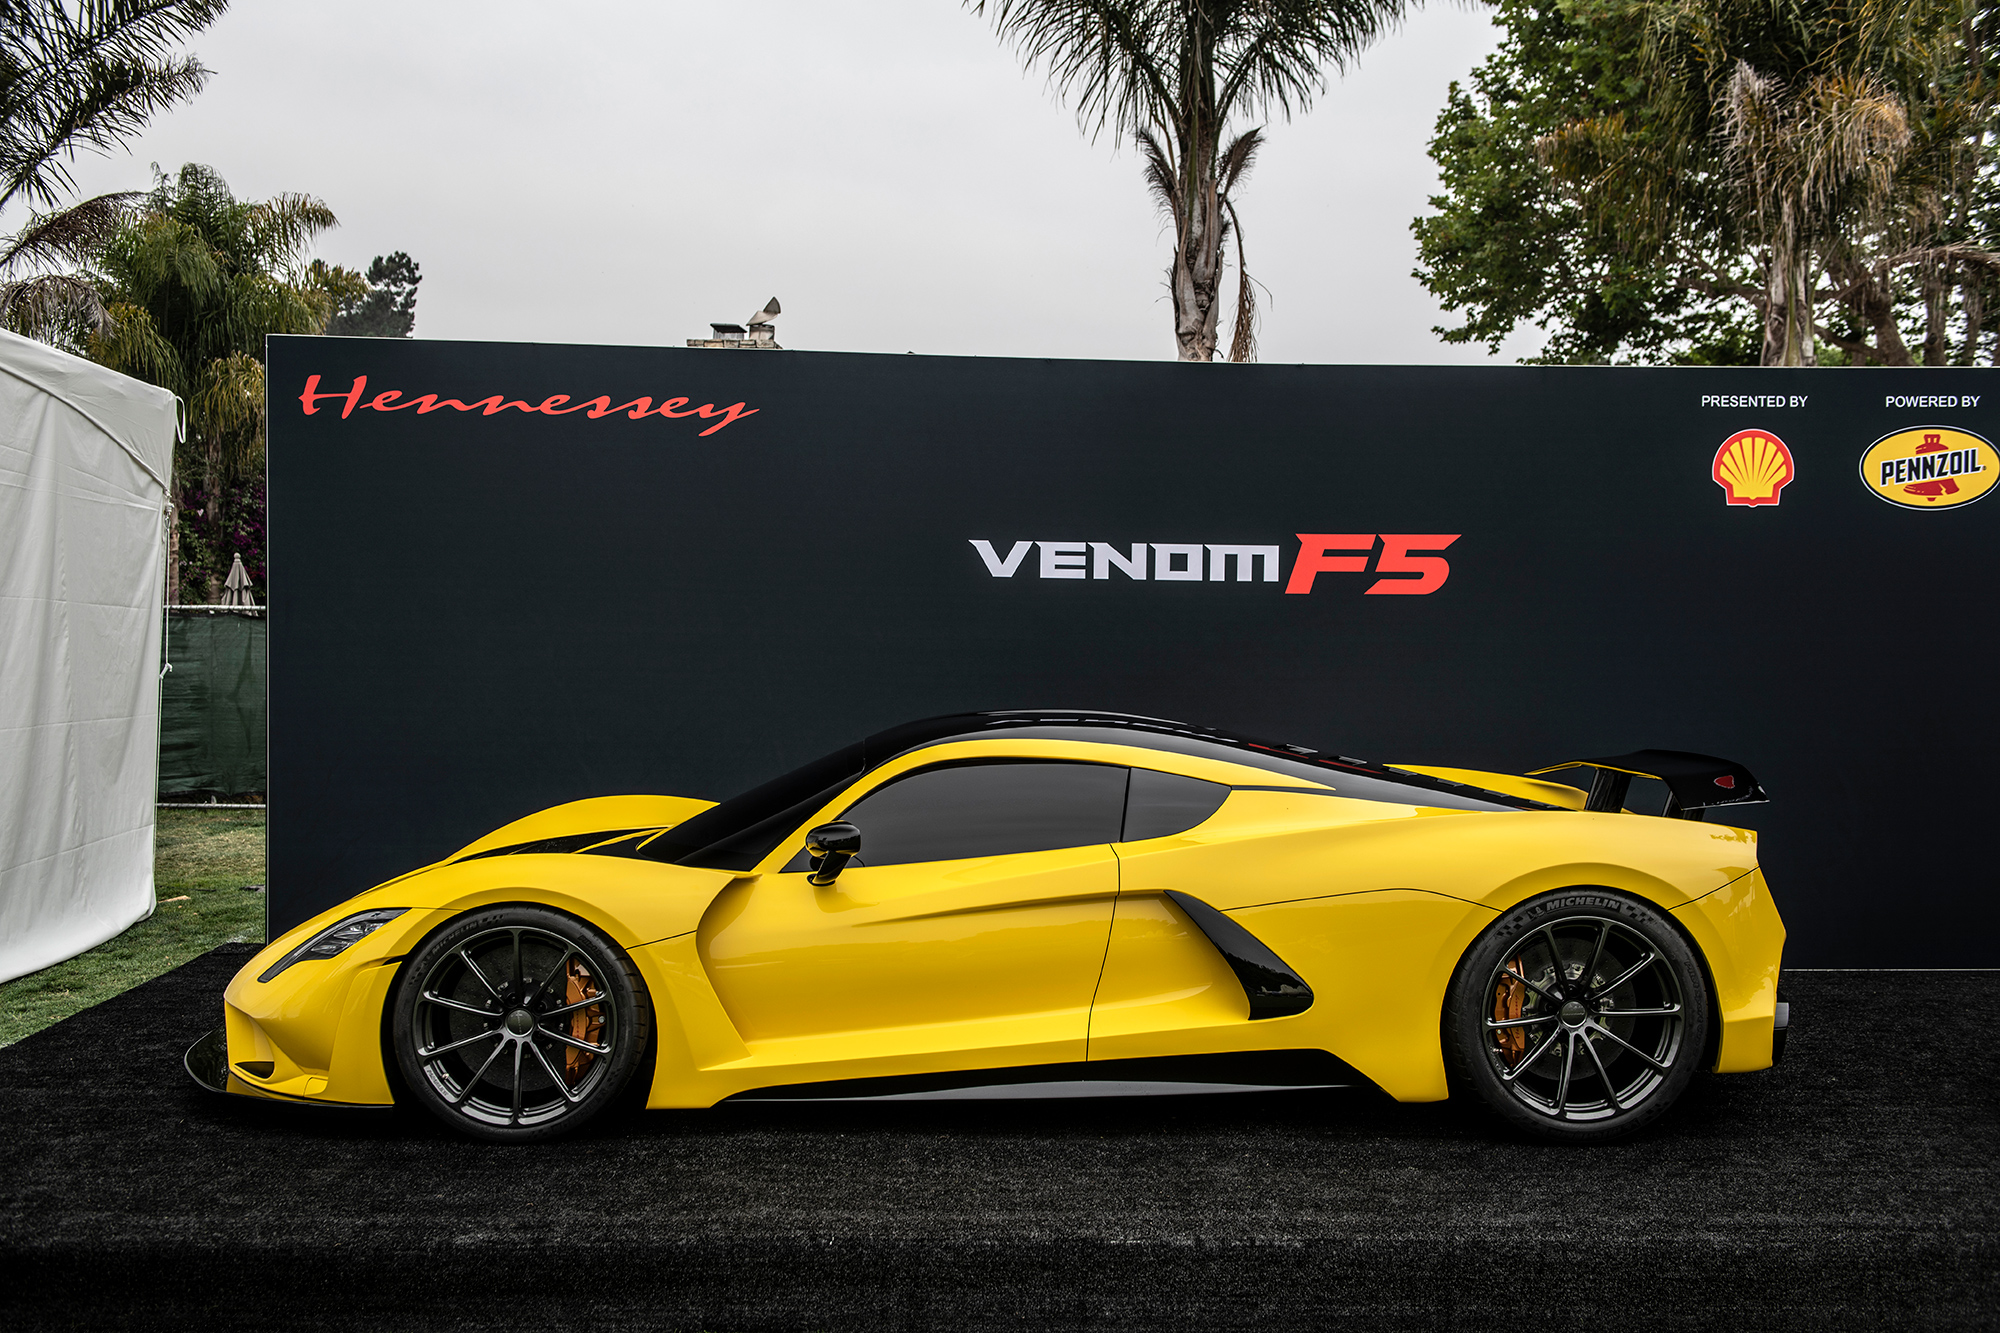 2018 Hennessey Venom F5 Venom F5 At The Quail 2018 Hennessey Special Vehicles